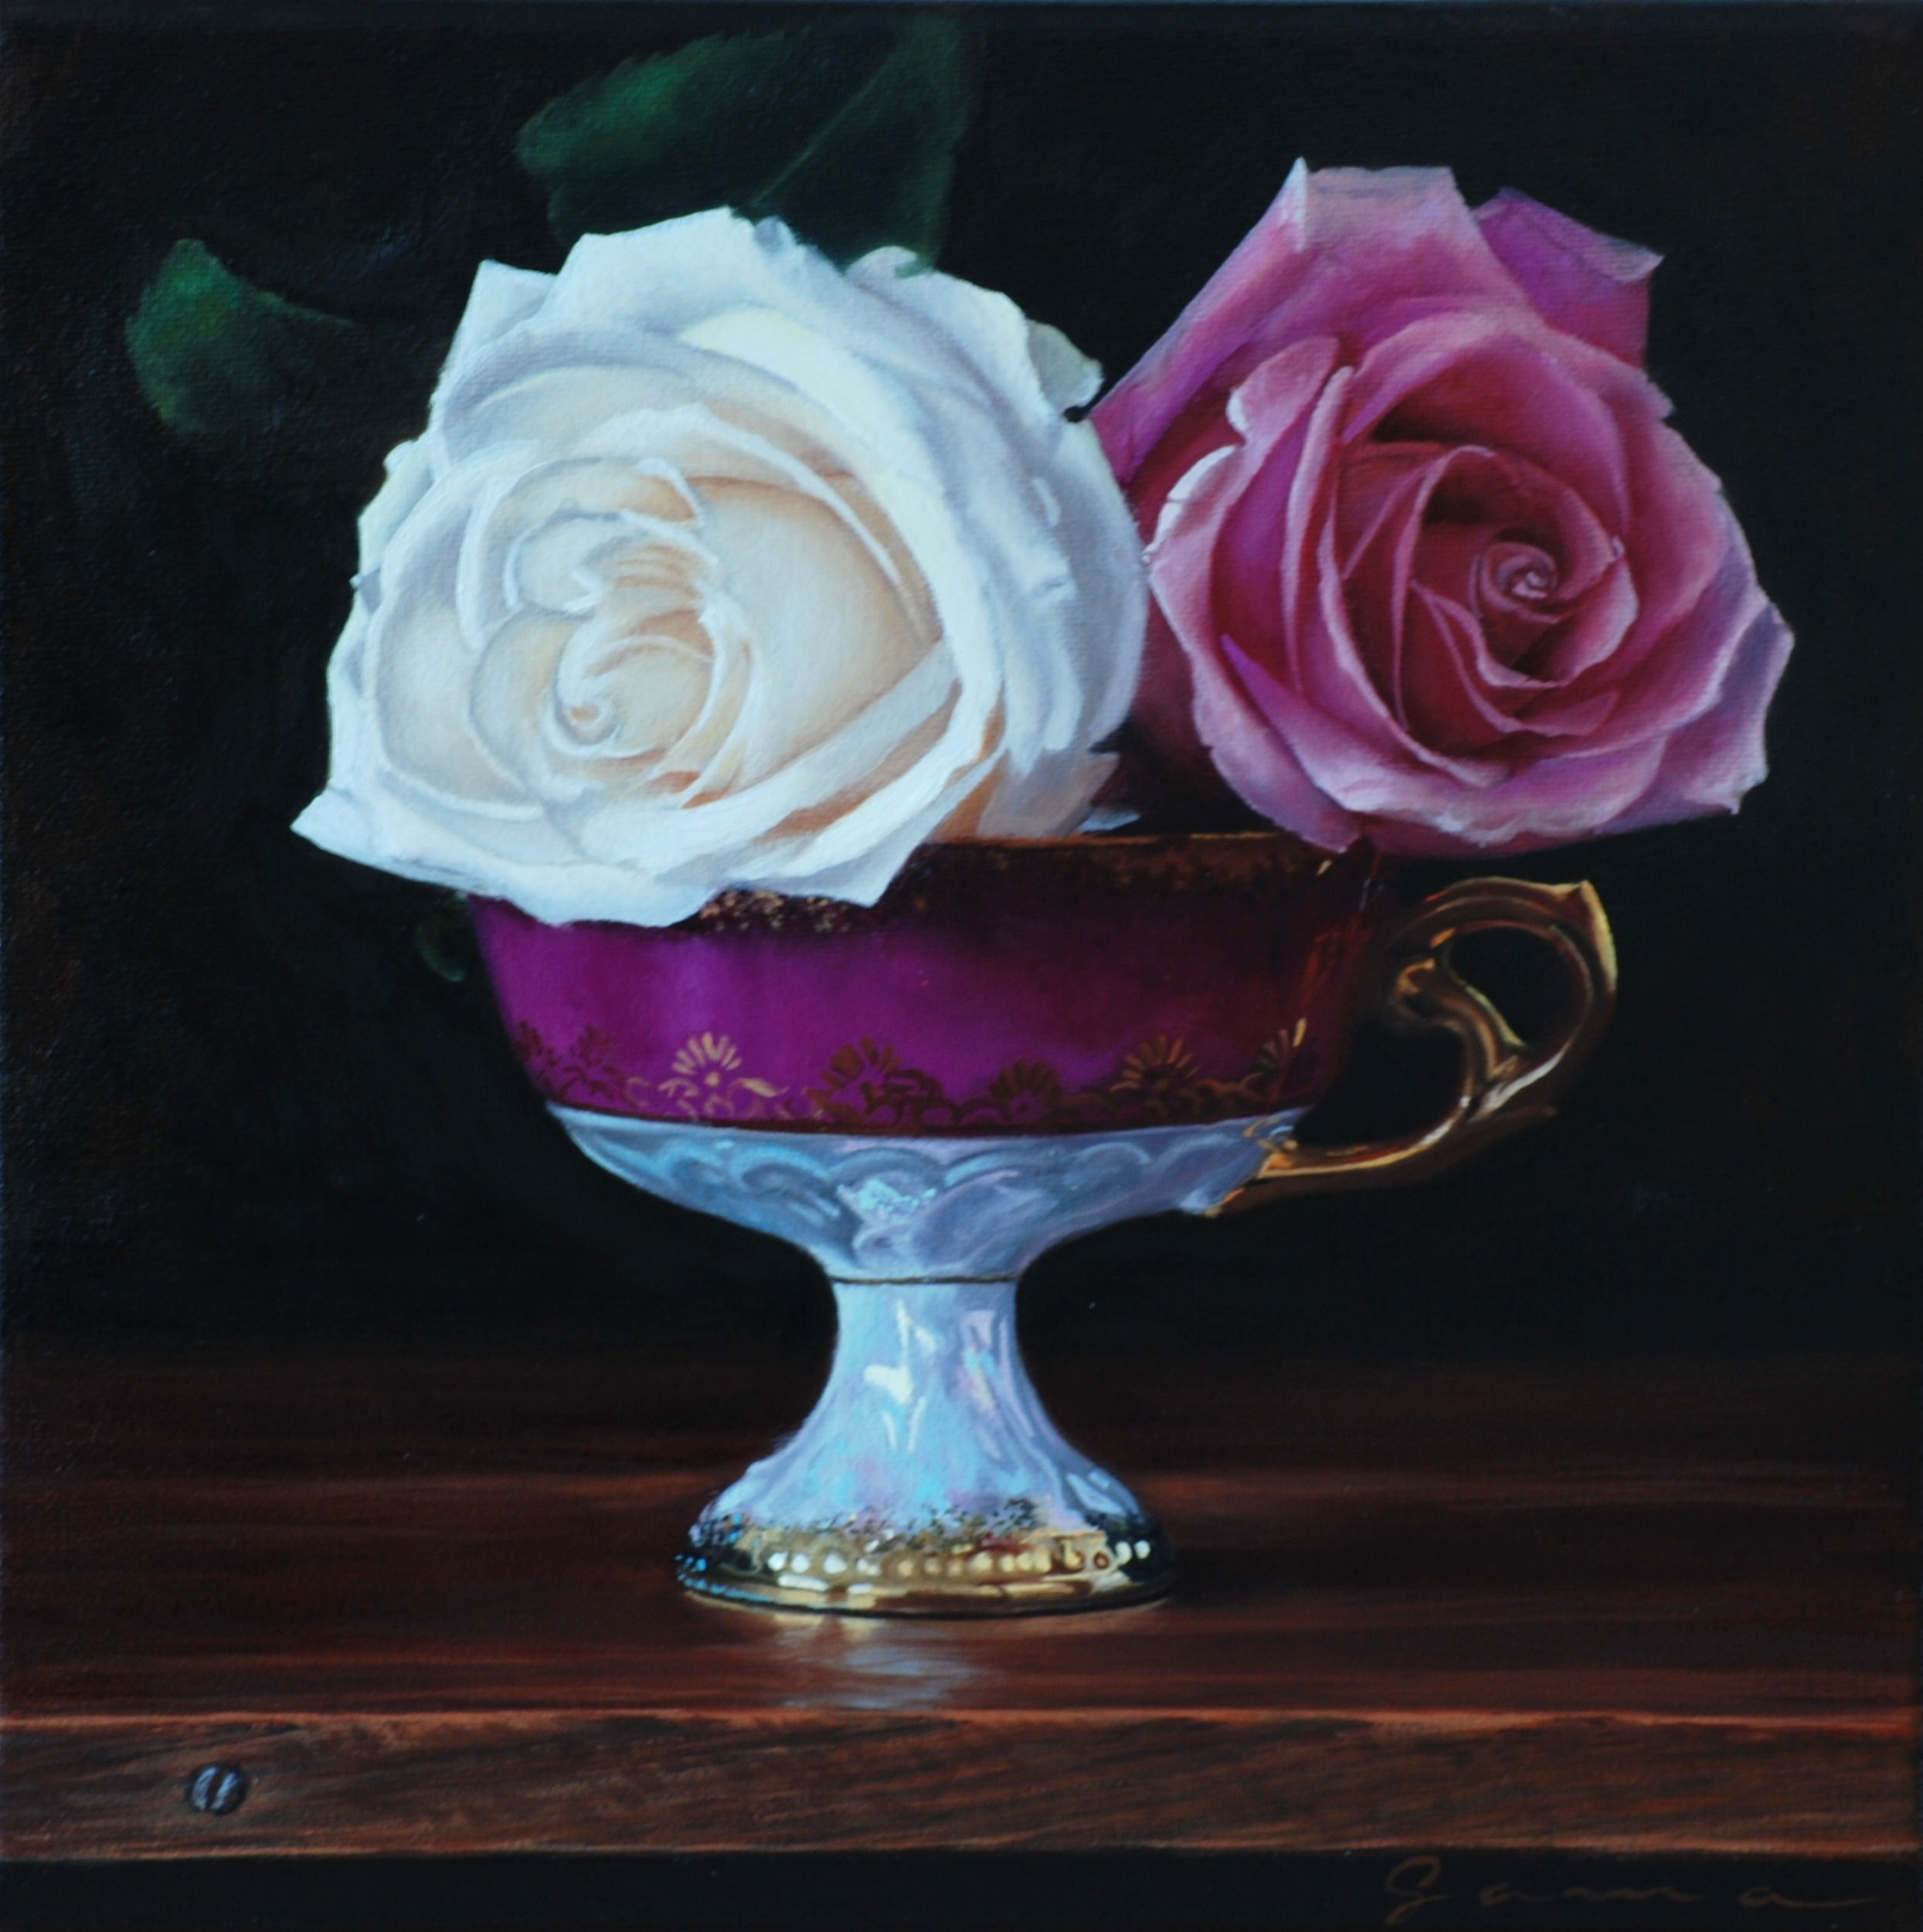 15-Anciant+cup+with+roses+II,+Oil+on+canvas,++10x10+ins.